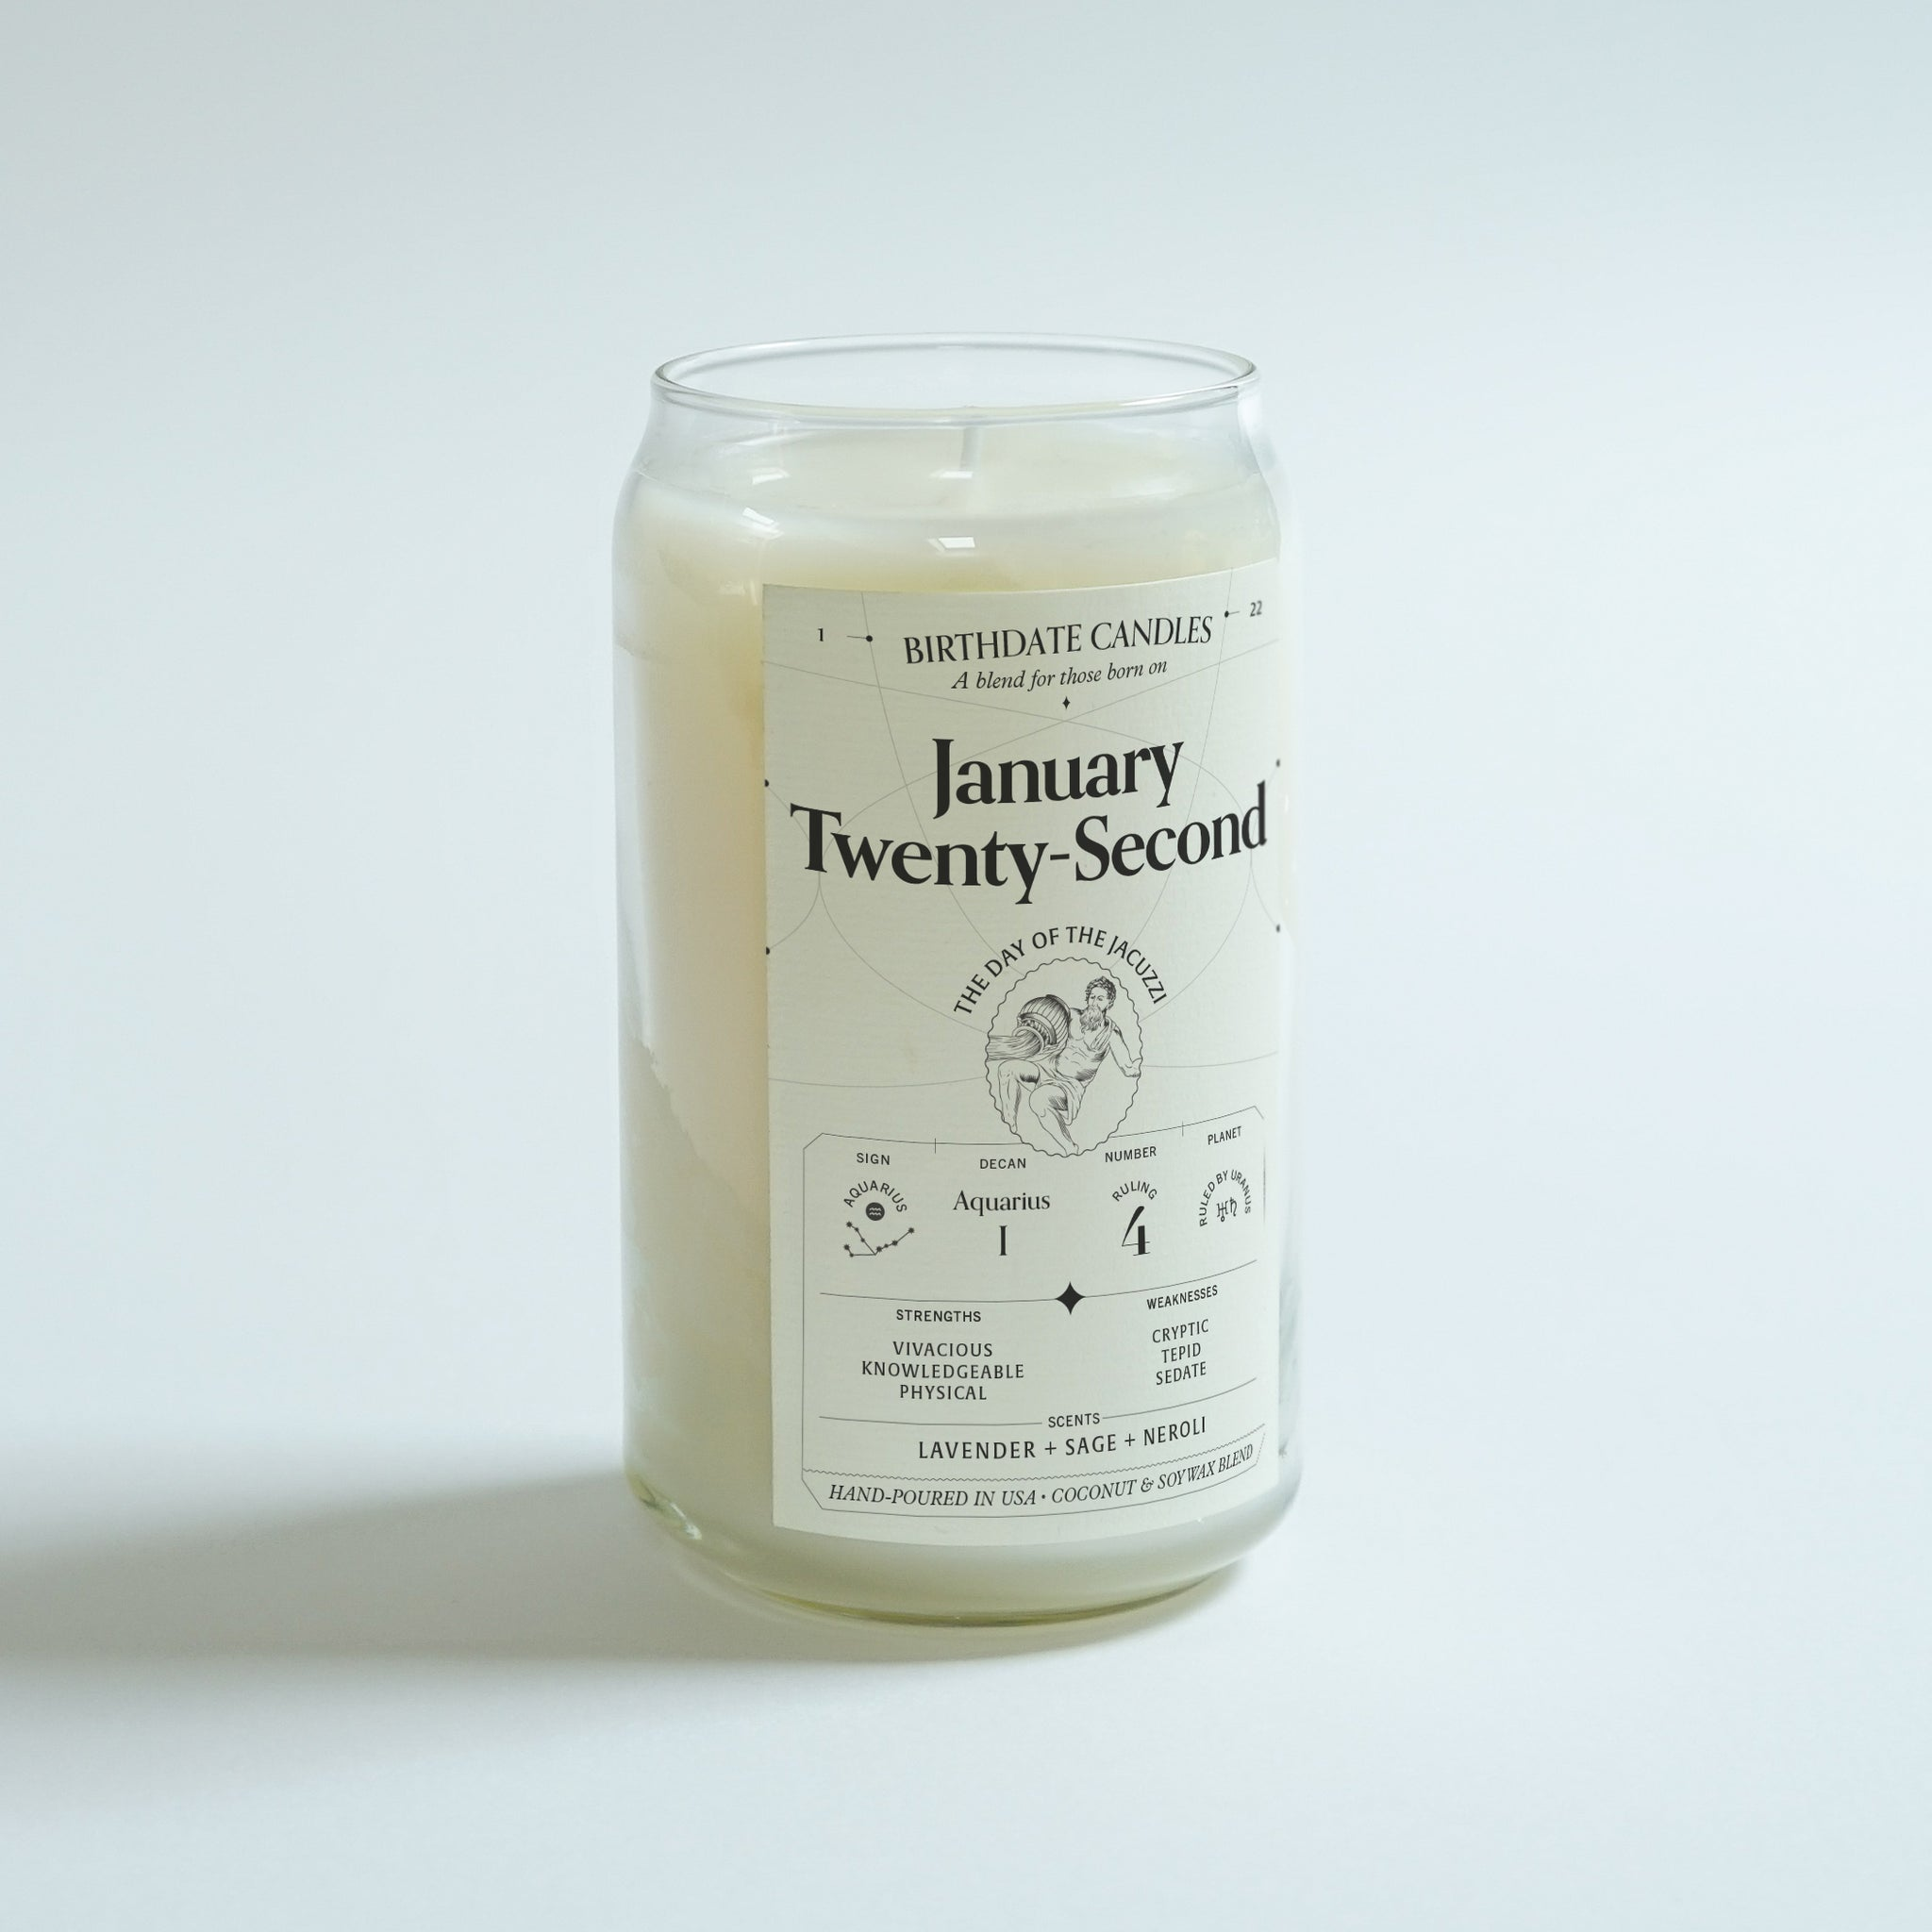 The January Twenty-Second Candle